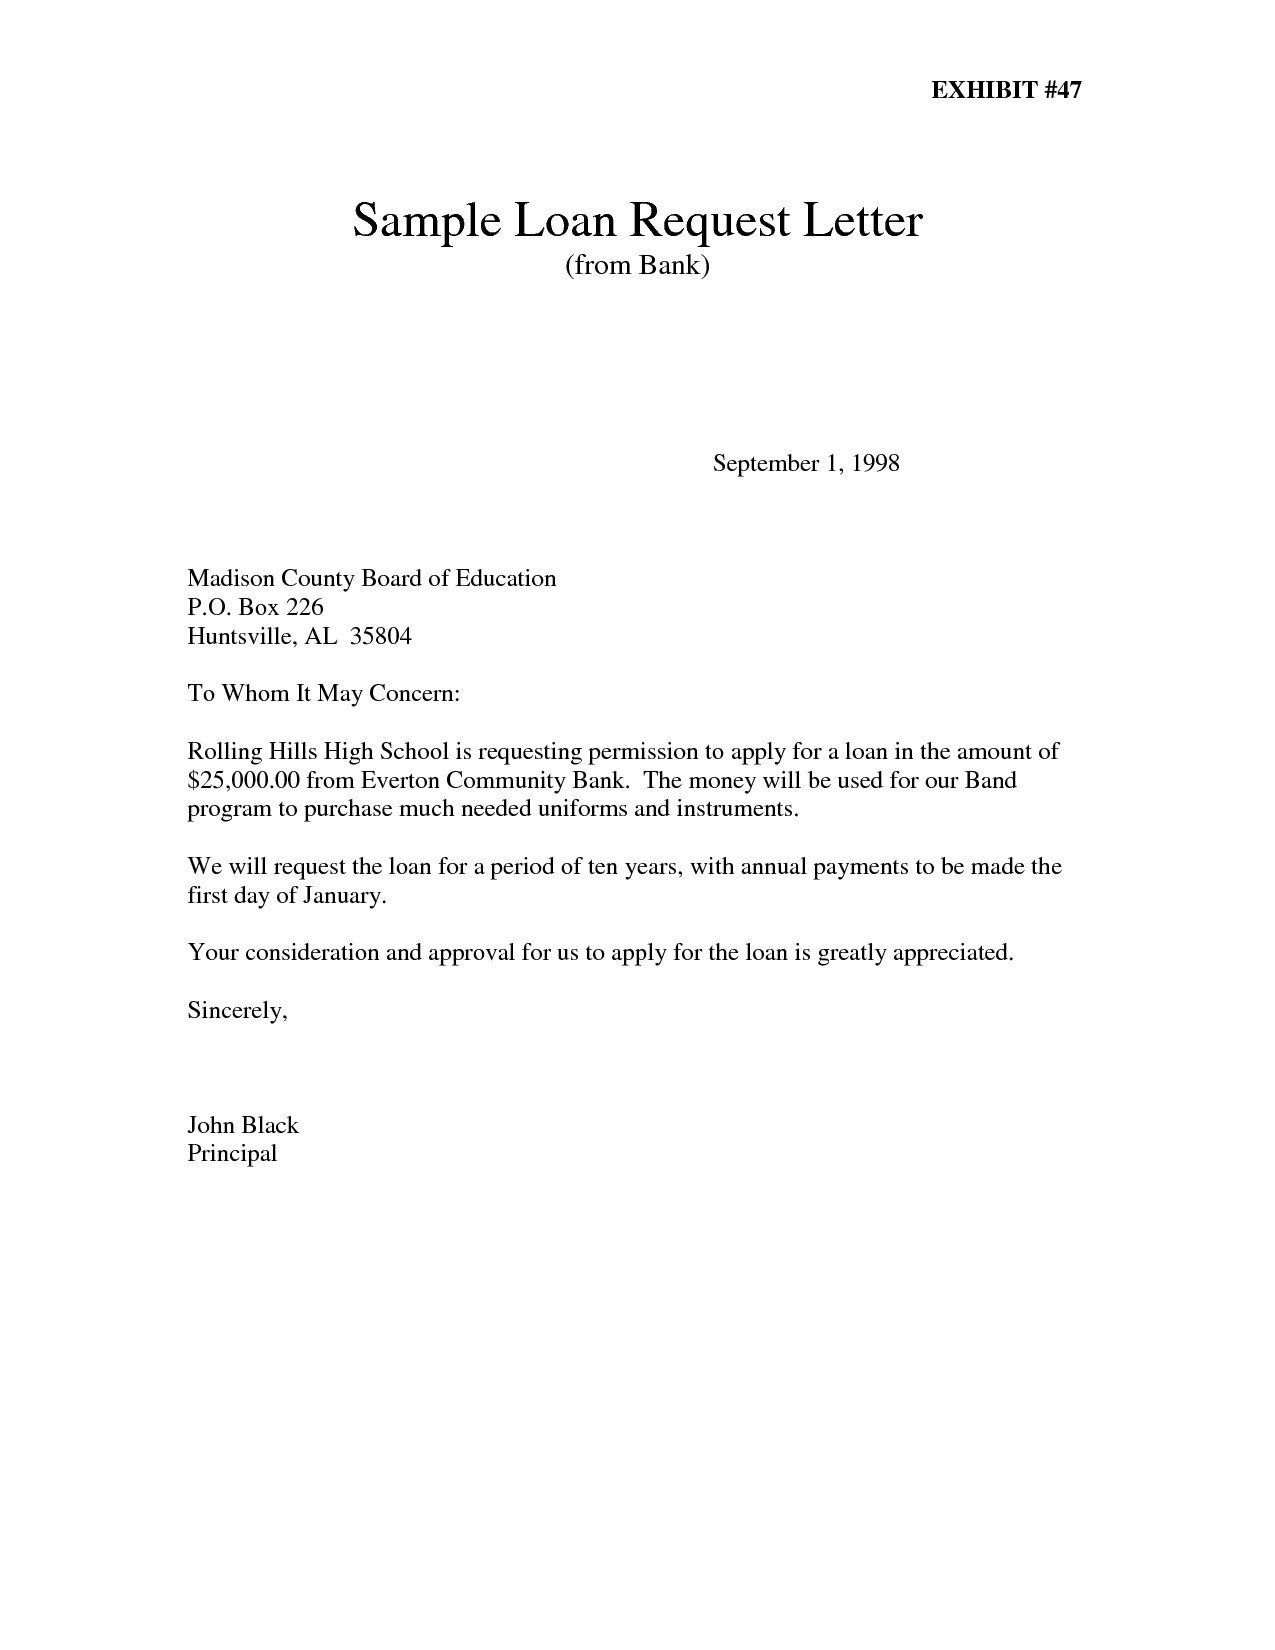 Personal Loan Letter Template - Best Request Letter to Bank Loan